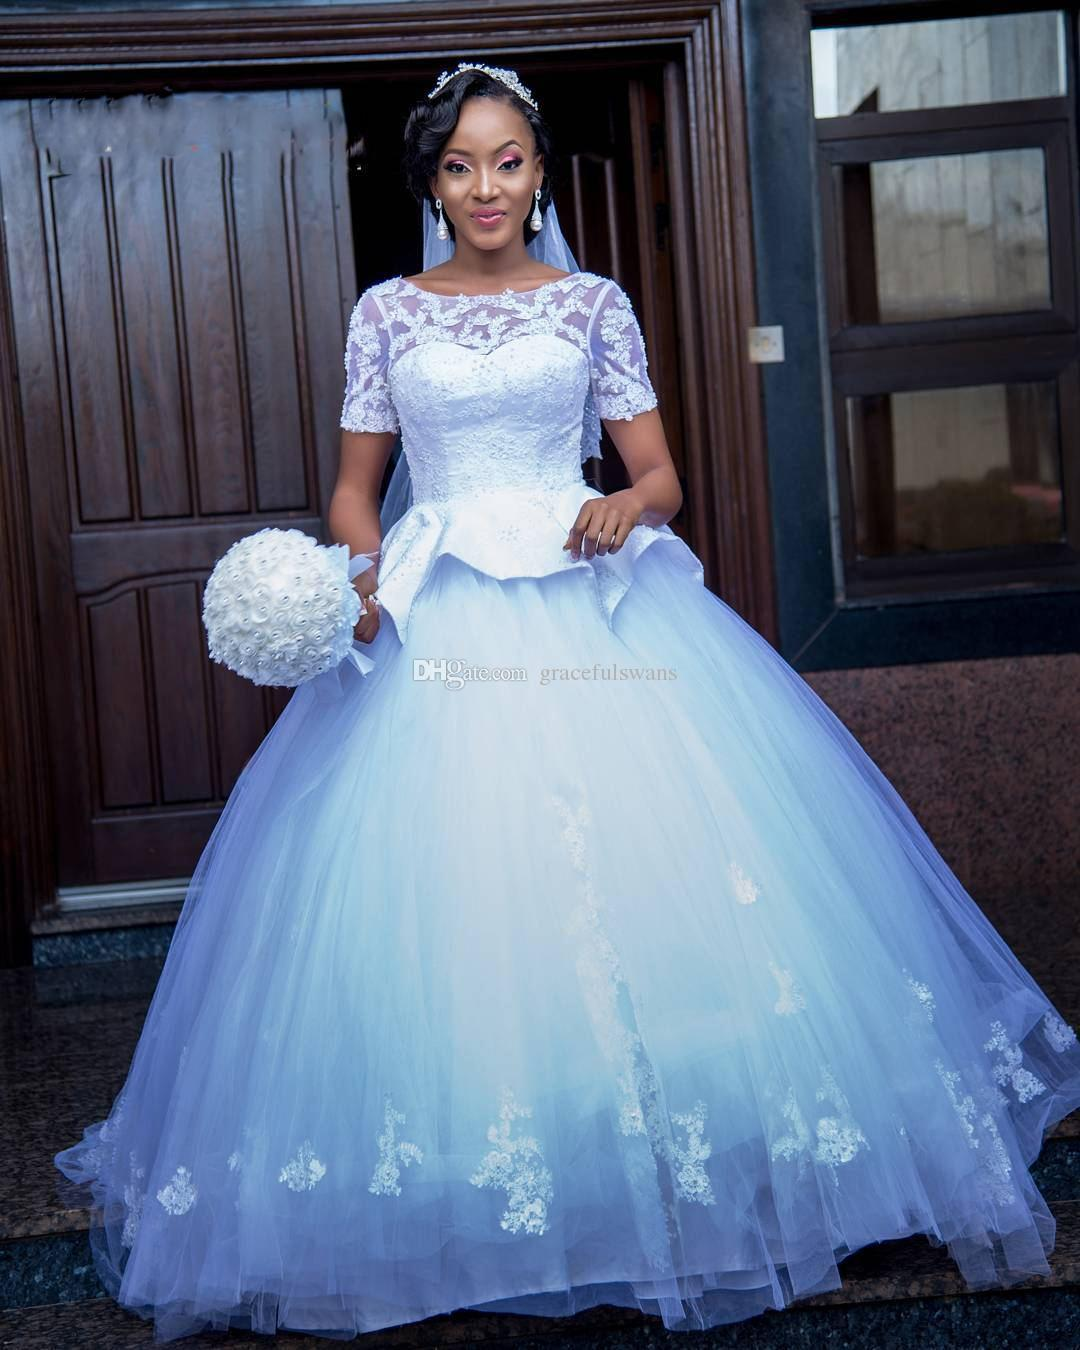 Short Sleeve Ball Gown Wedding Dresses African Scoop Lace Appliques ...